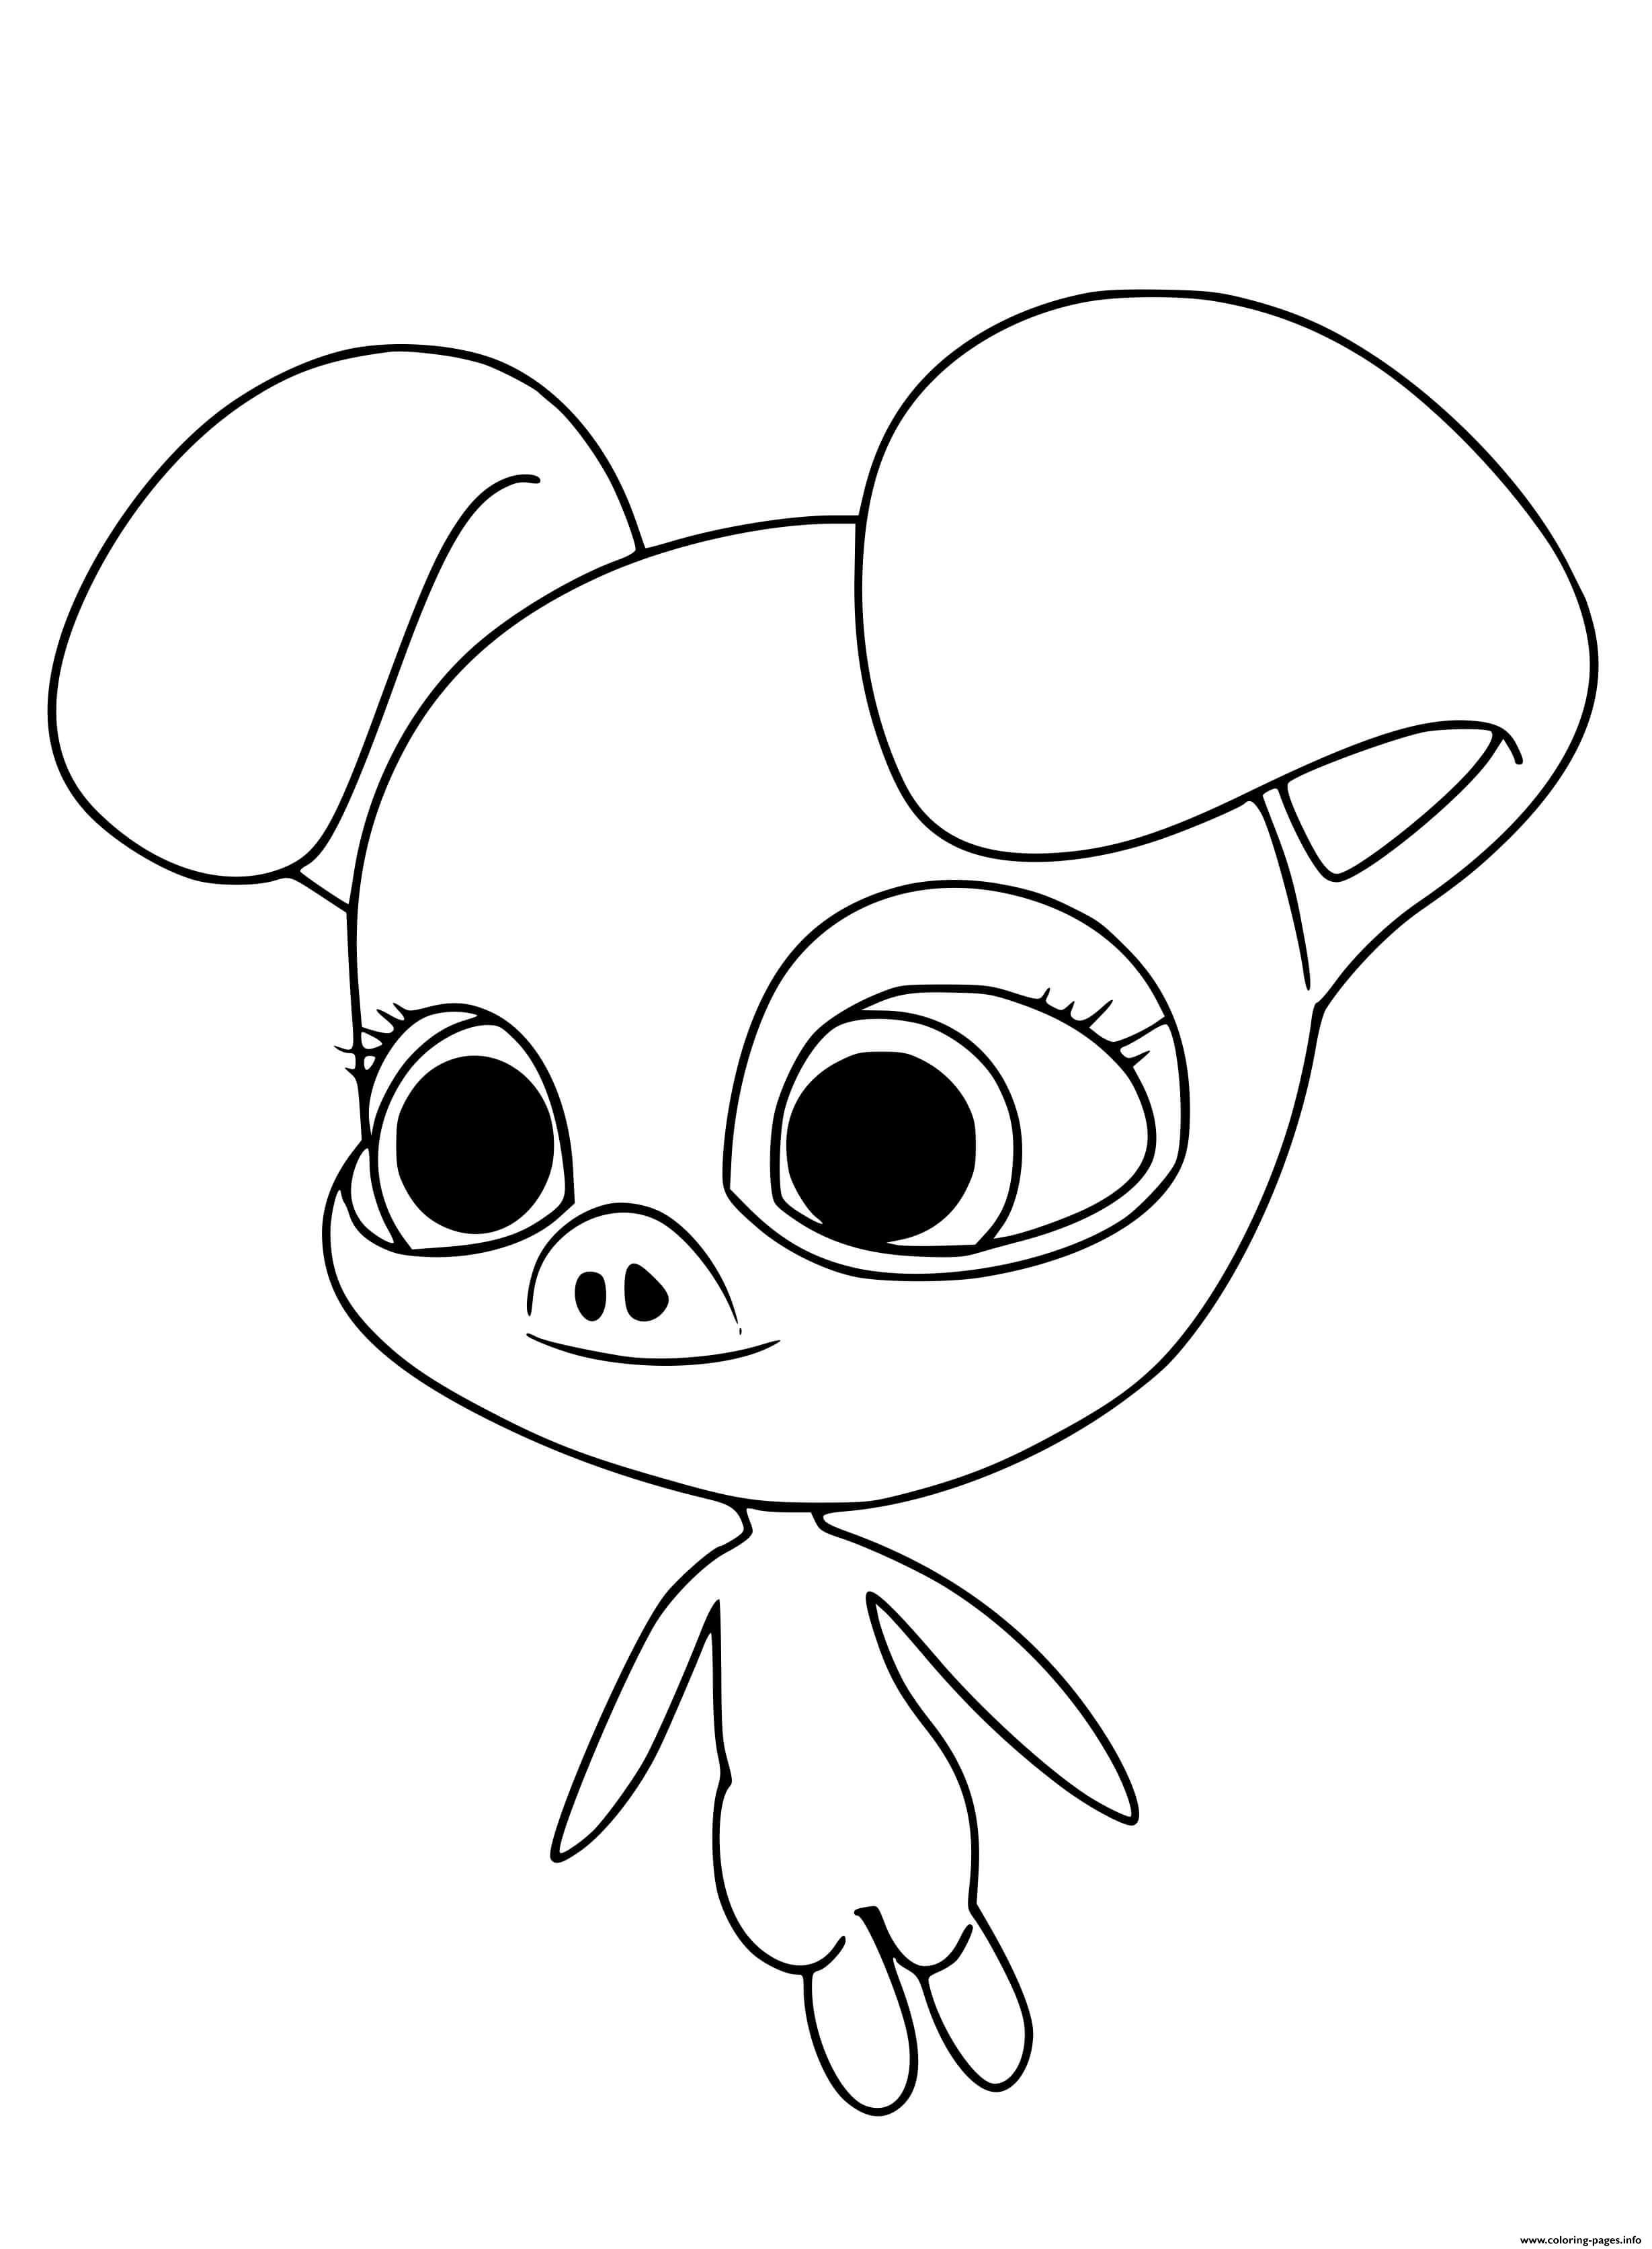 Print Daizzi Kwami Coloring Pages In 2020 Ladybug Coloring Page Drawings Miraculous Ladybug